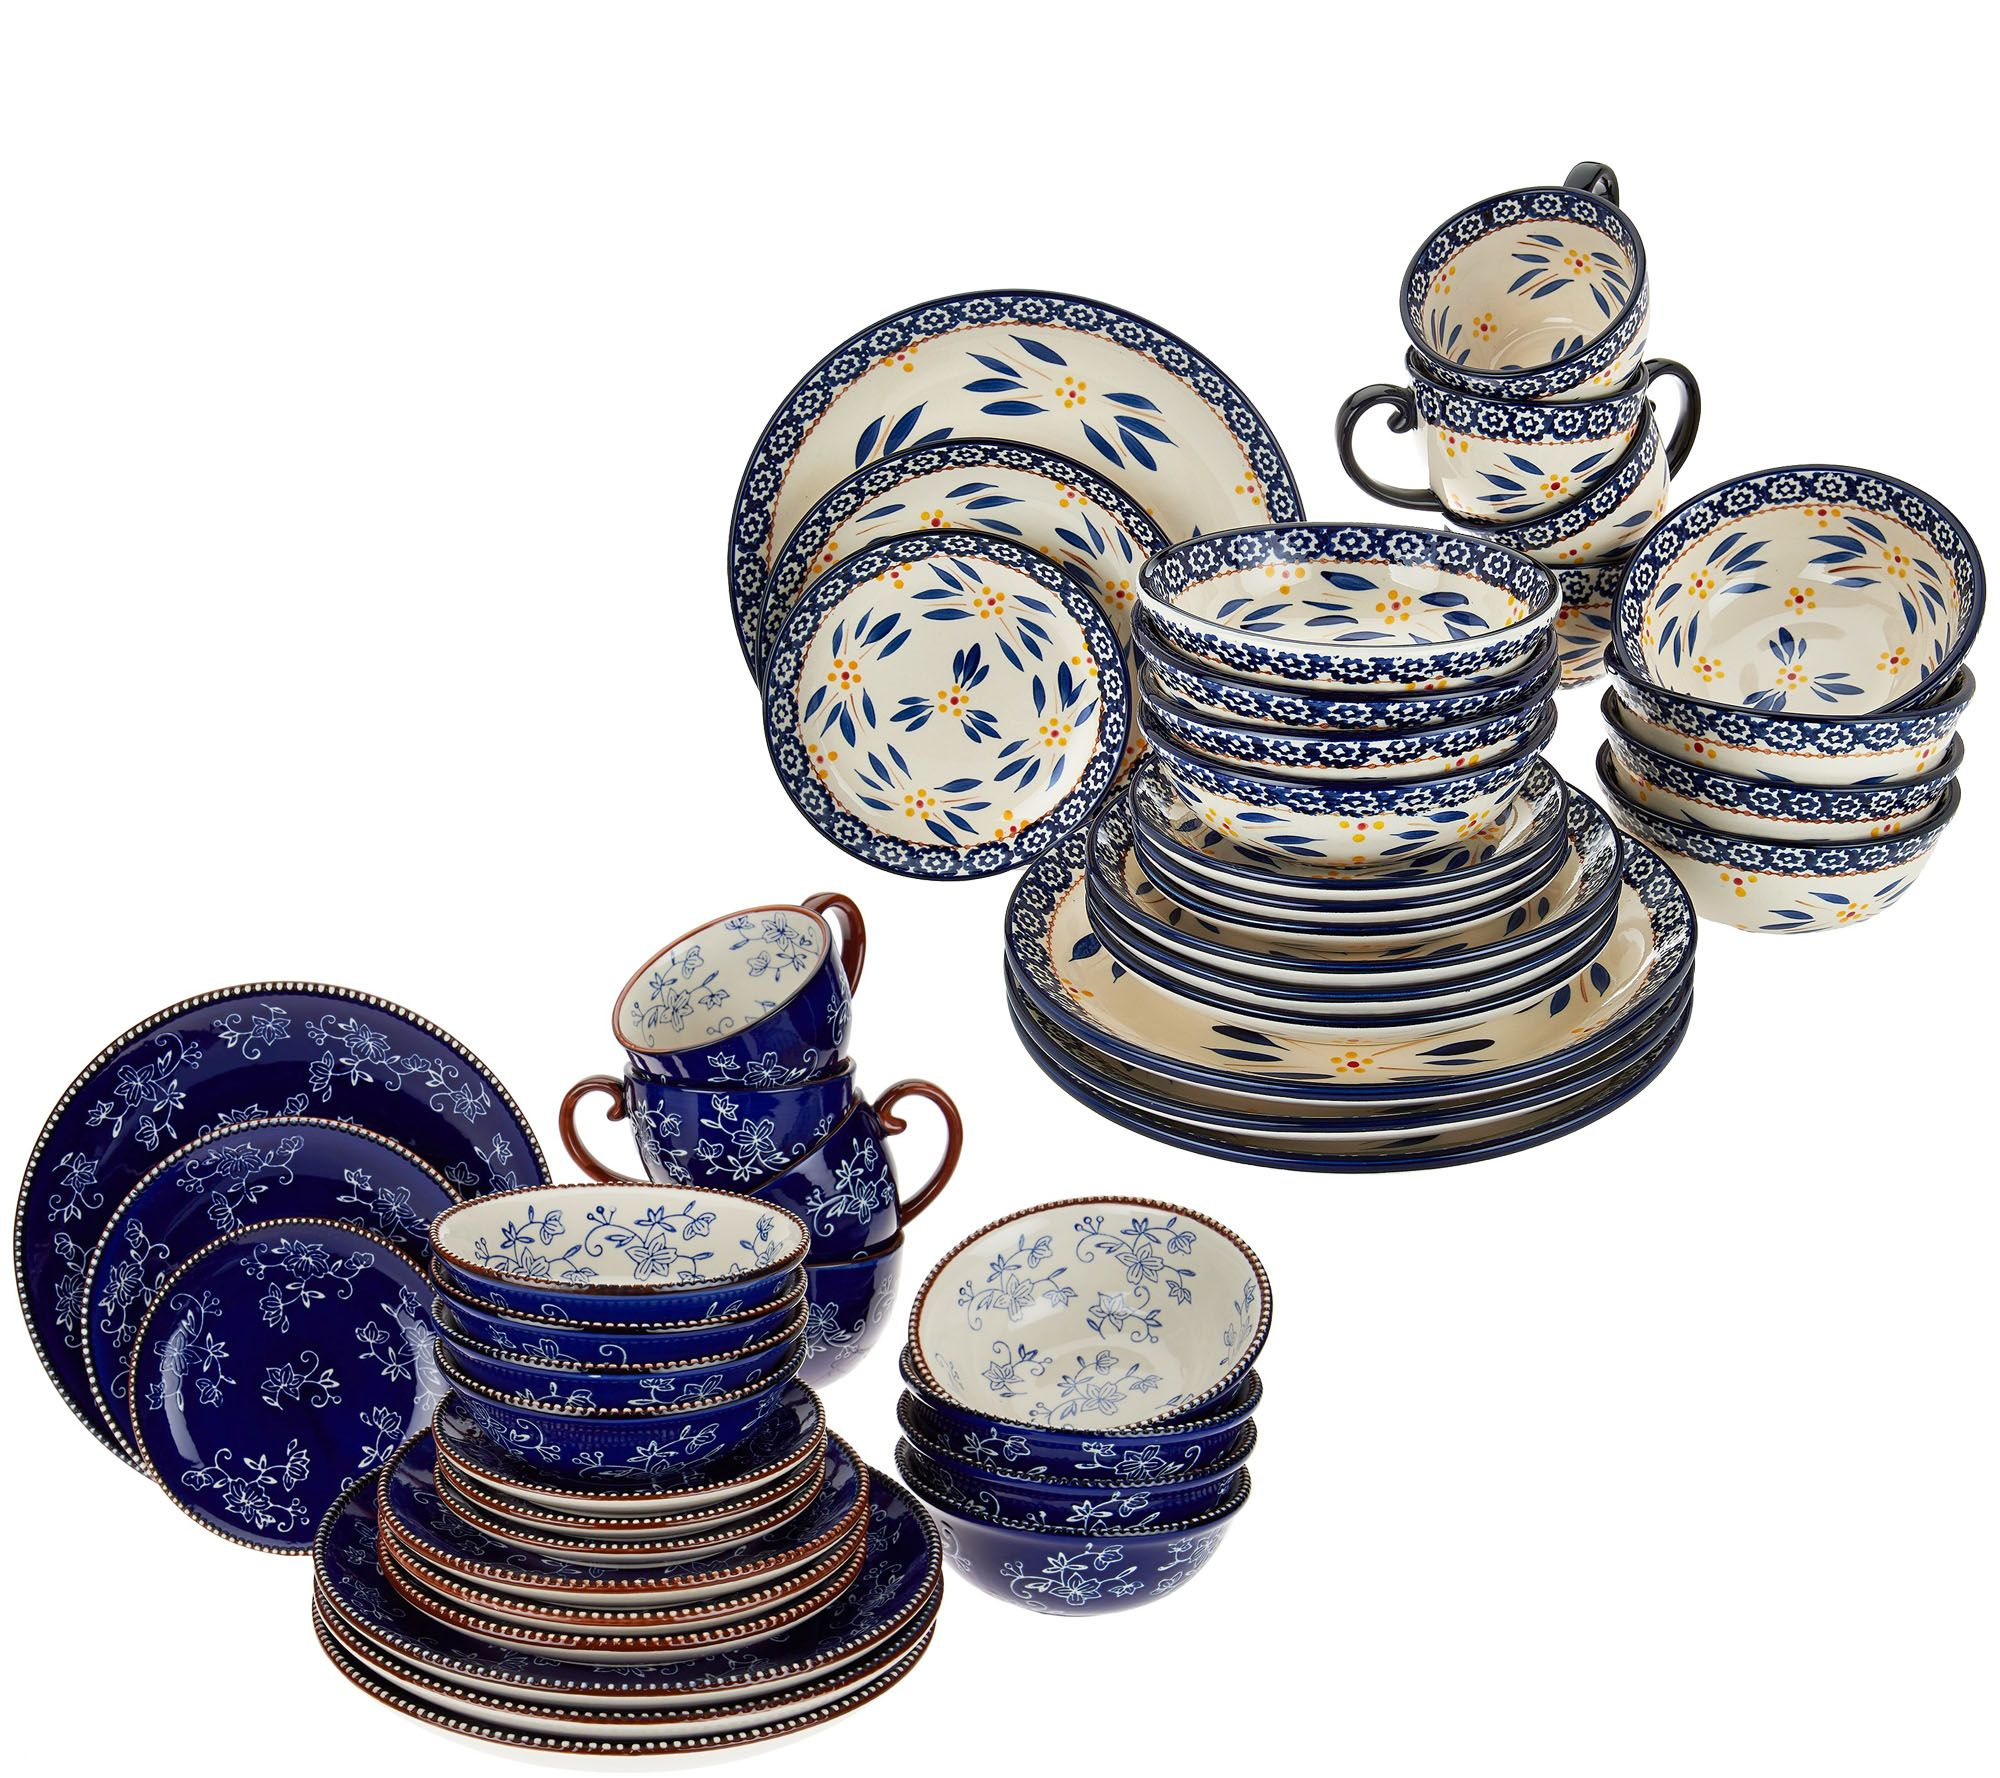 Temp-tations 24-piece Old World or Floral Lace Dinnerware Set — QVC.com